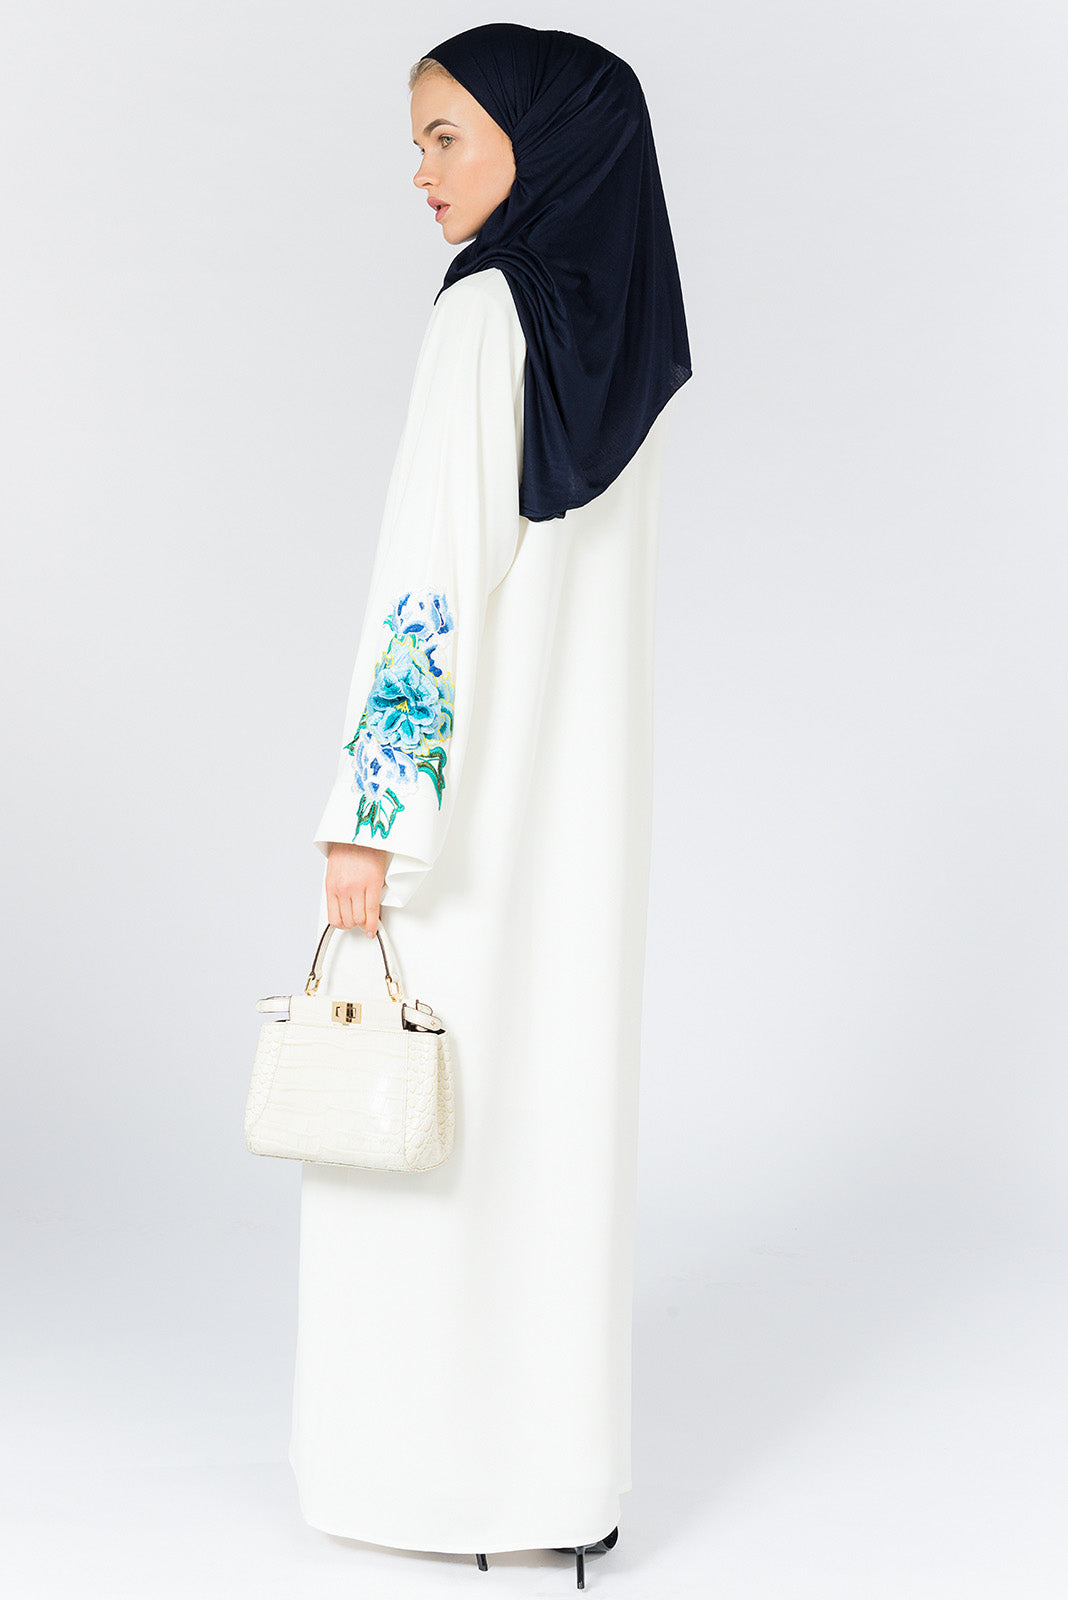 FERADJE London Ocean abaya UK